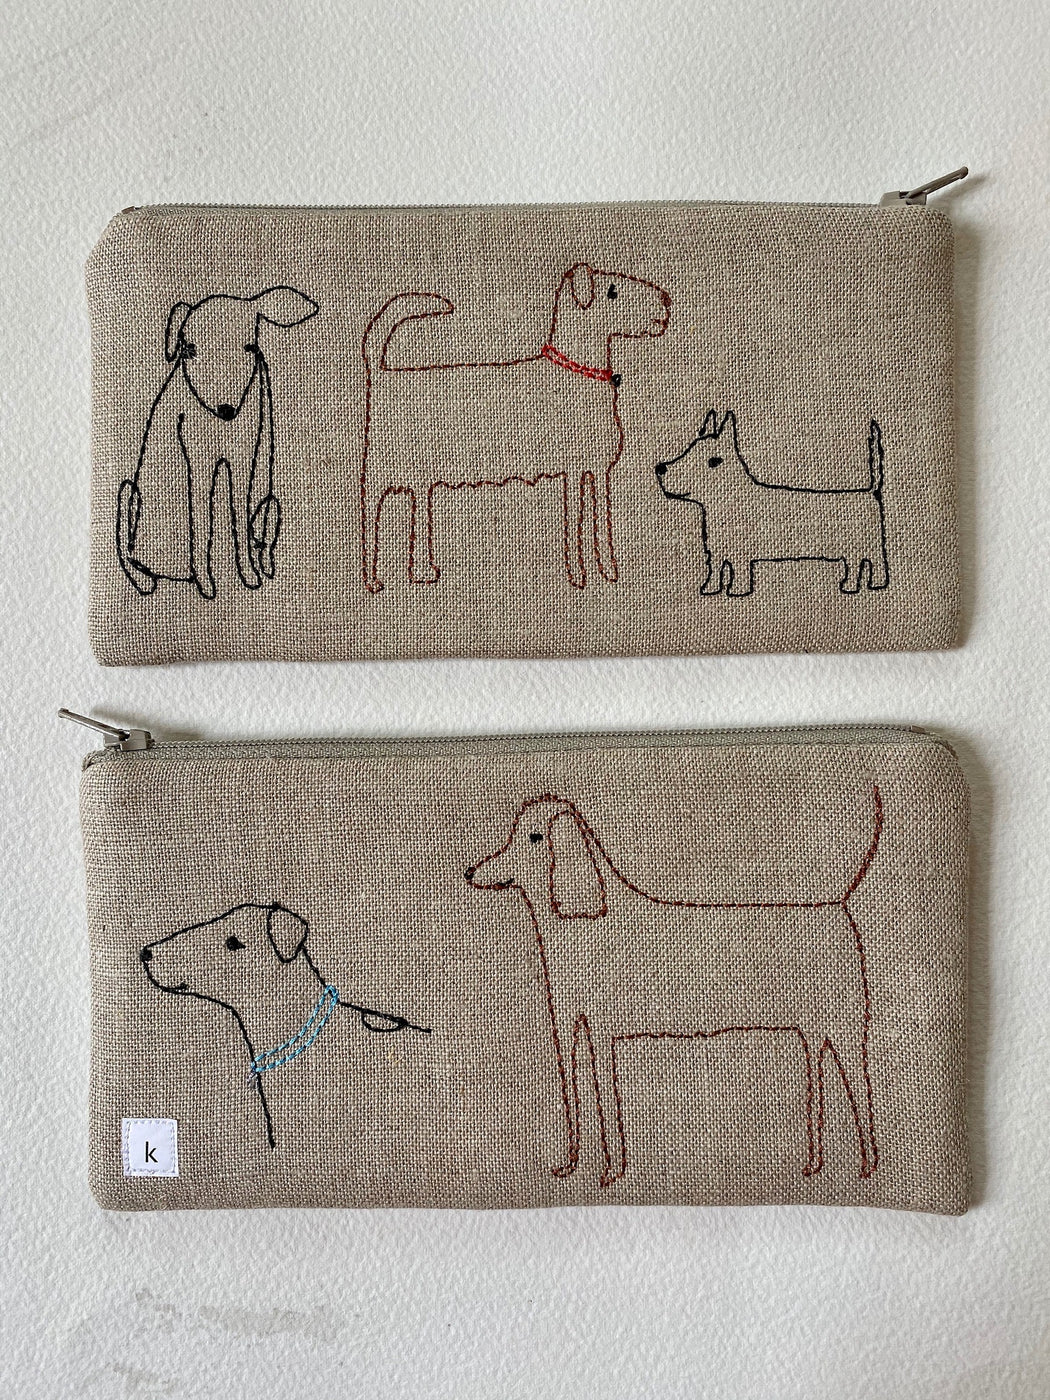 """Dogs"" Pouch - Small"